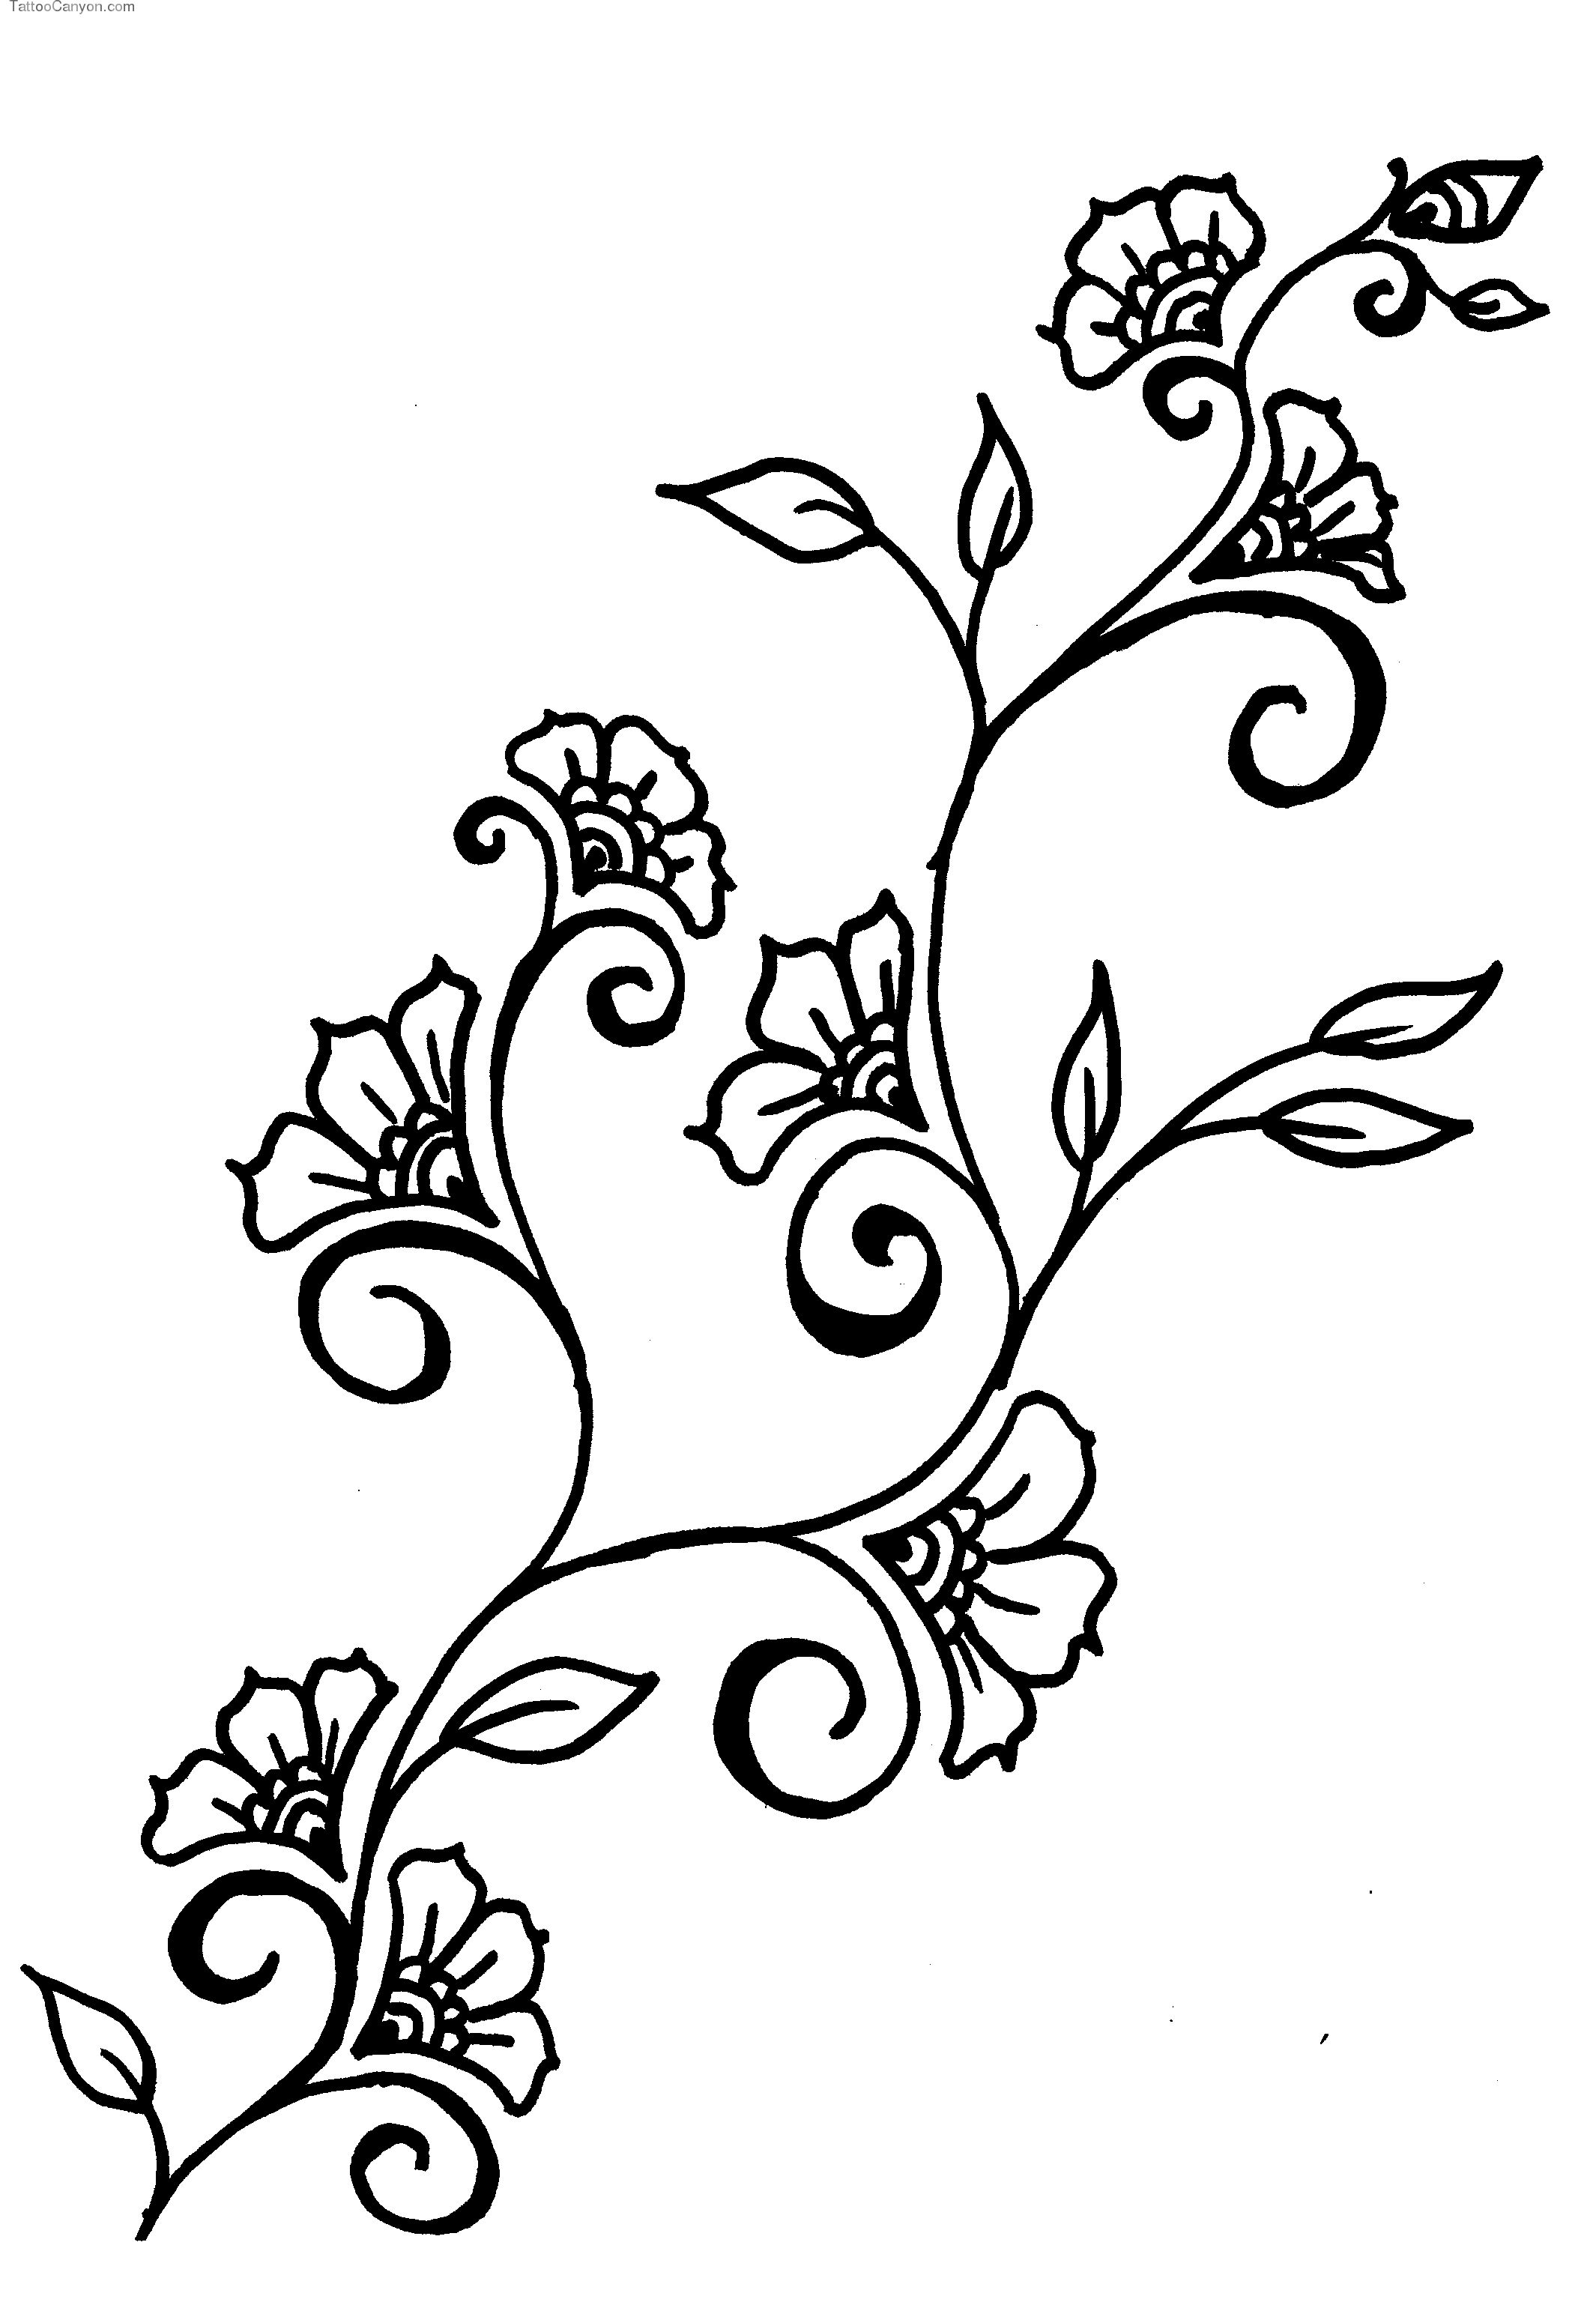 Vines Flowers Design Drawings - ClipArt Best | Craft Ideas ...